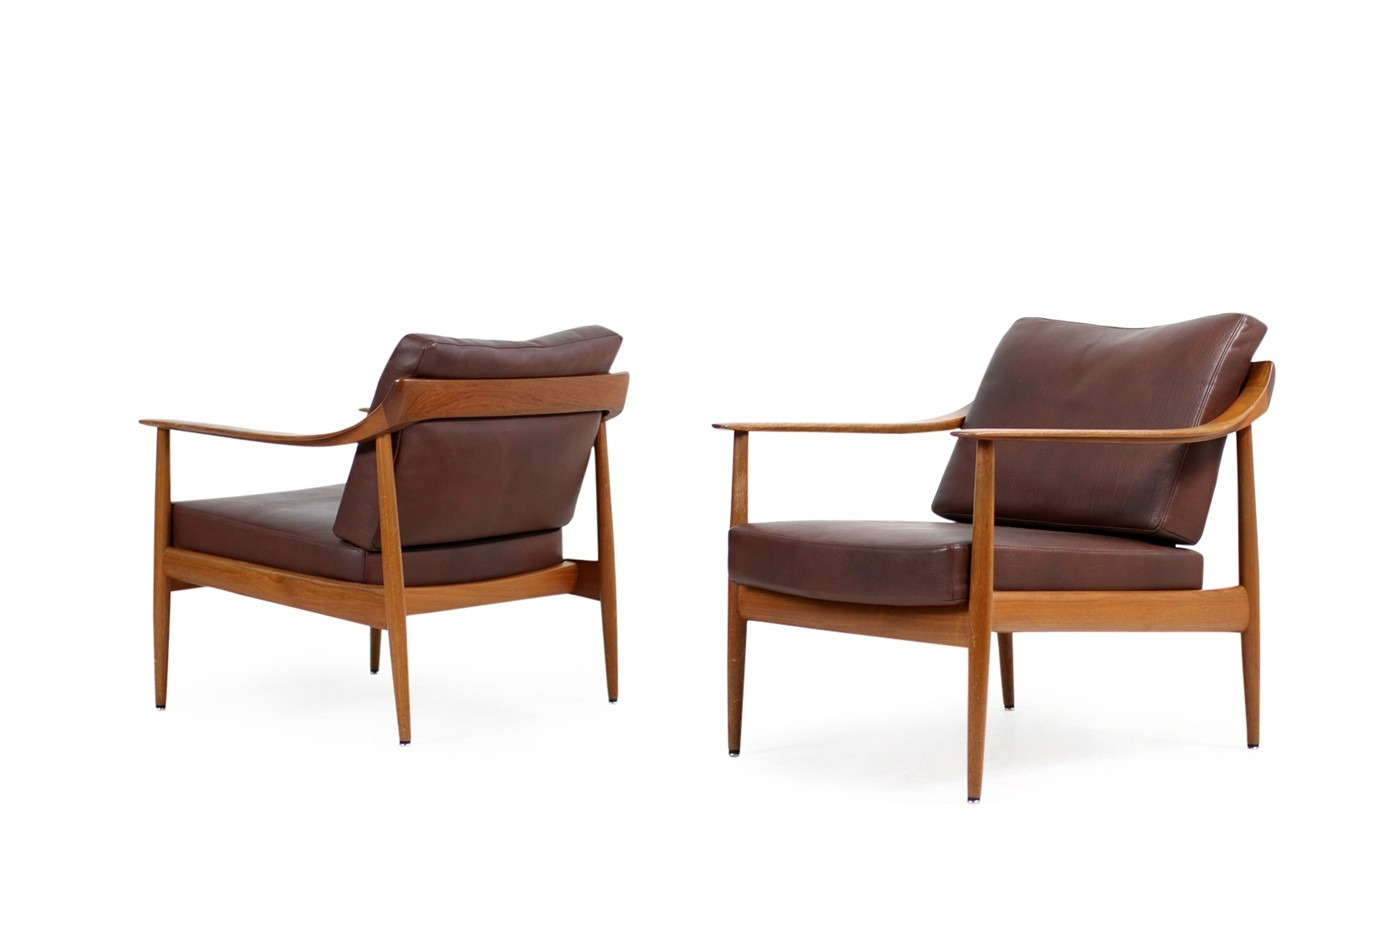 Sessel Knoll Pair Of 1960s Teak Leather Easy Chairs Knoll Antimott Mid Century